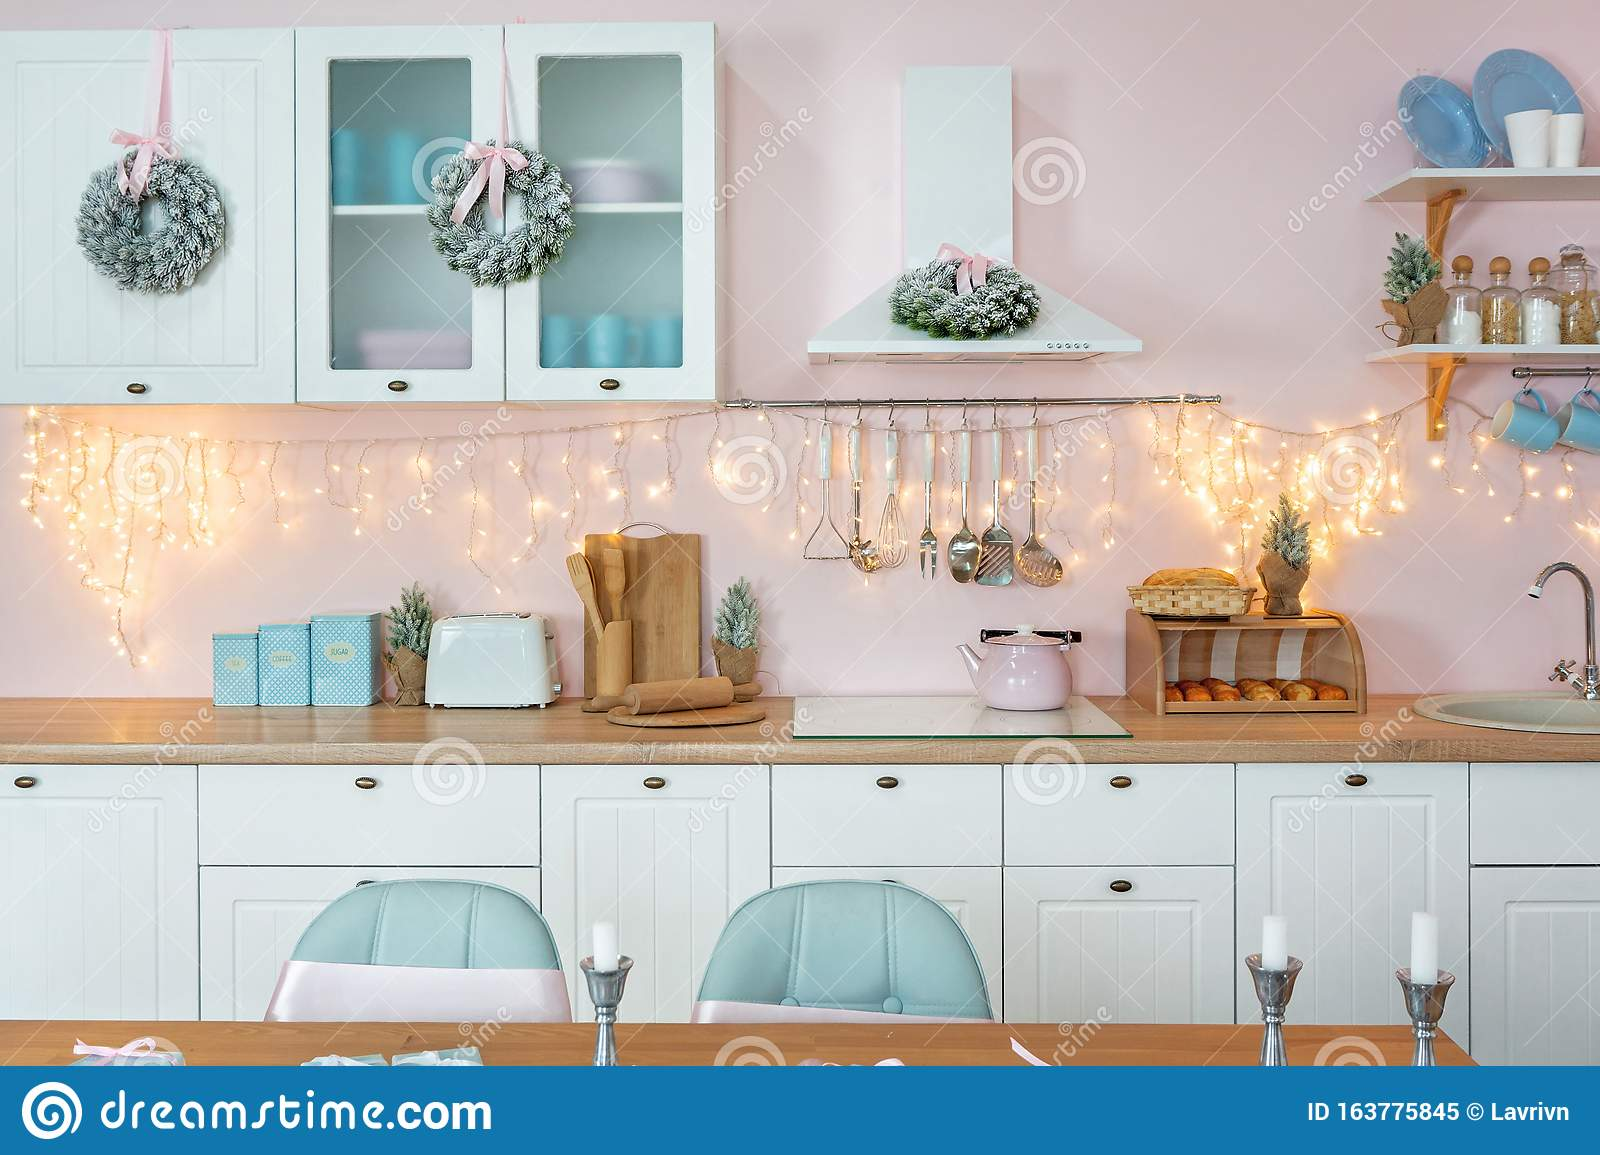 Closeup Of Interior Of Modern White Kitchen With Pink Walls And Blue Decor On A Christmas New Year Eve Stock Image Image Of Home Garland 163775845